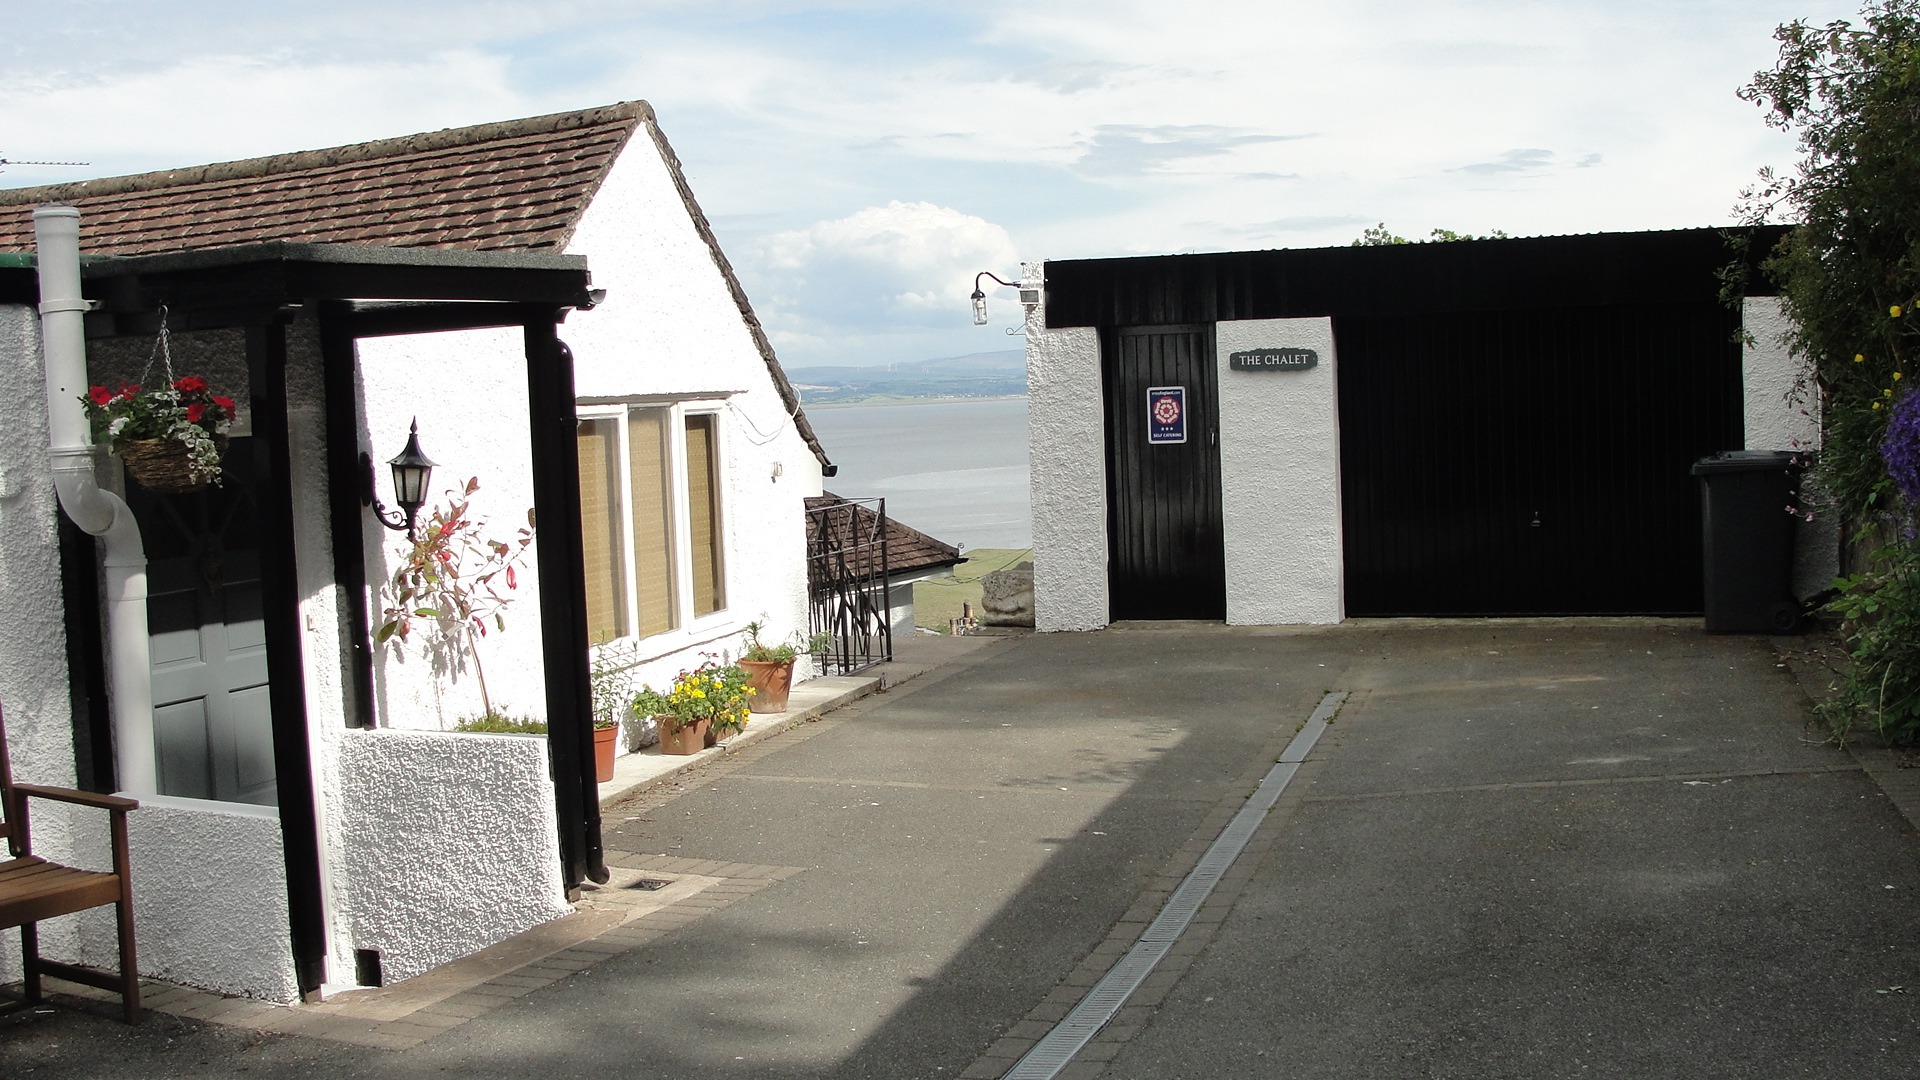 Chalet private drive and parking area